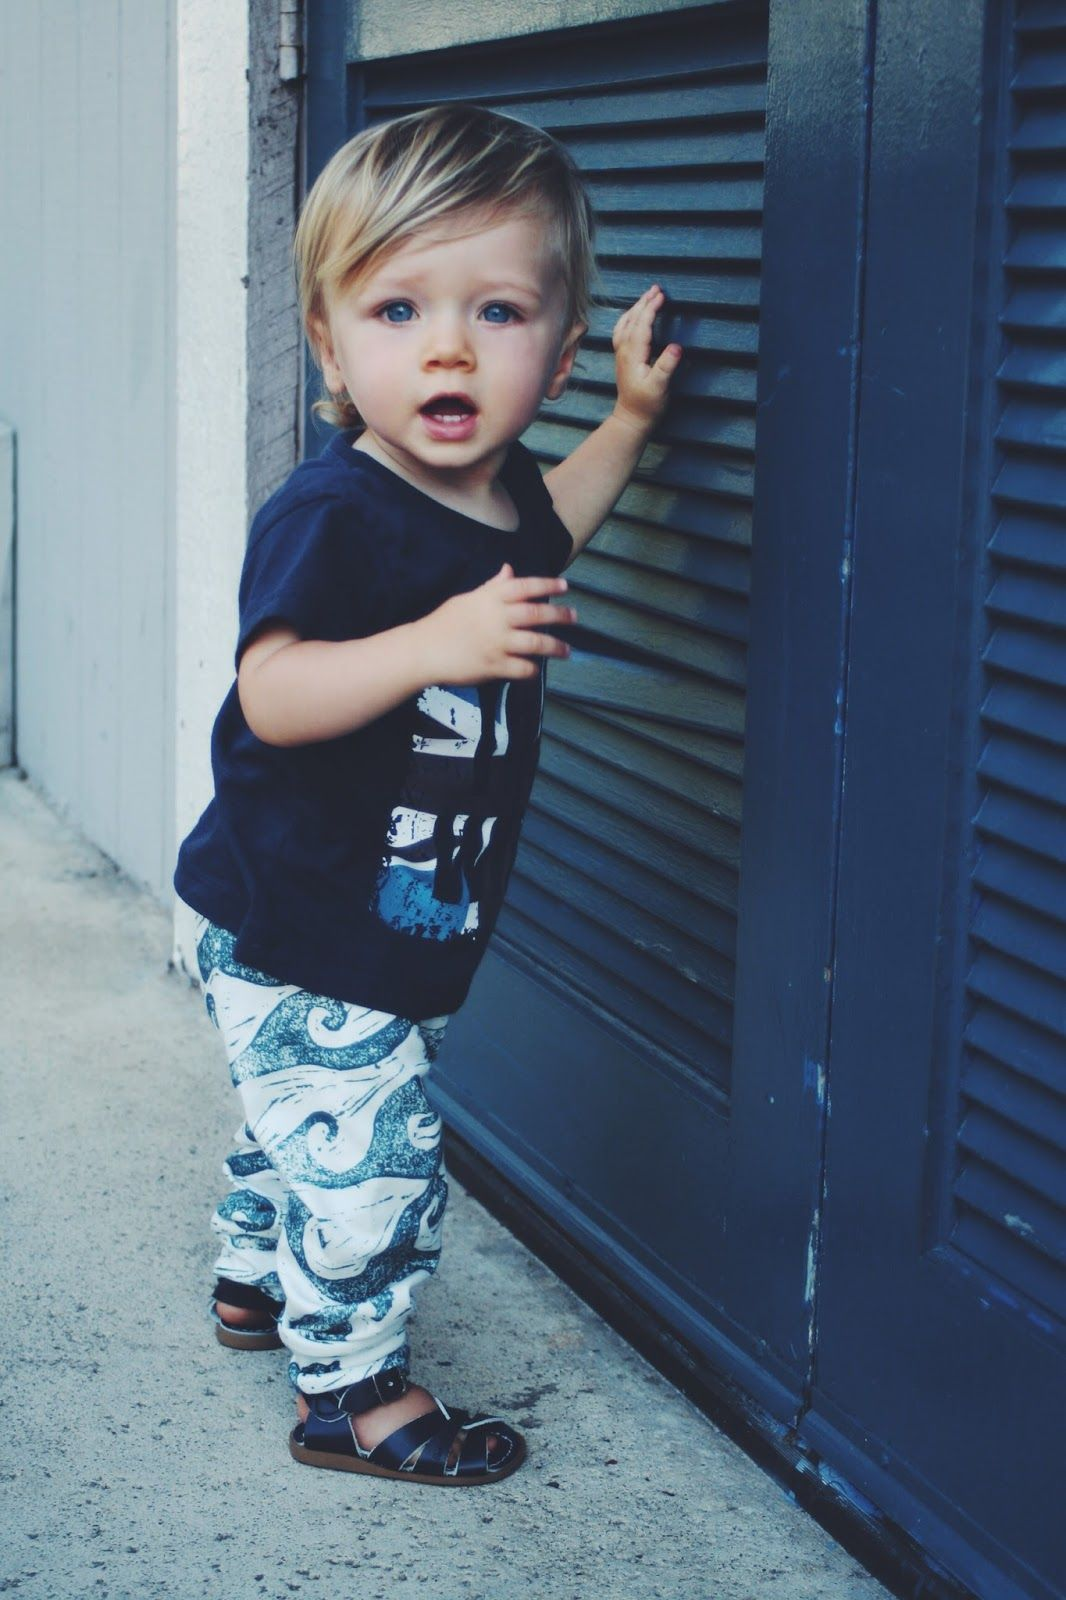 Baby boy style baby style baby salt water sandals toddler style